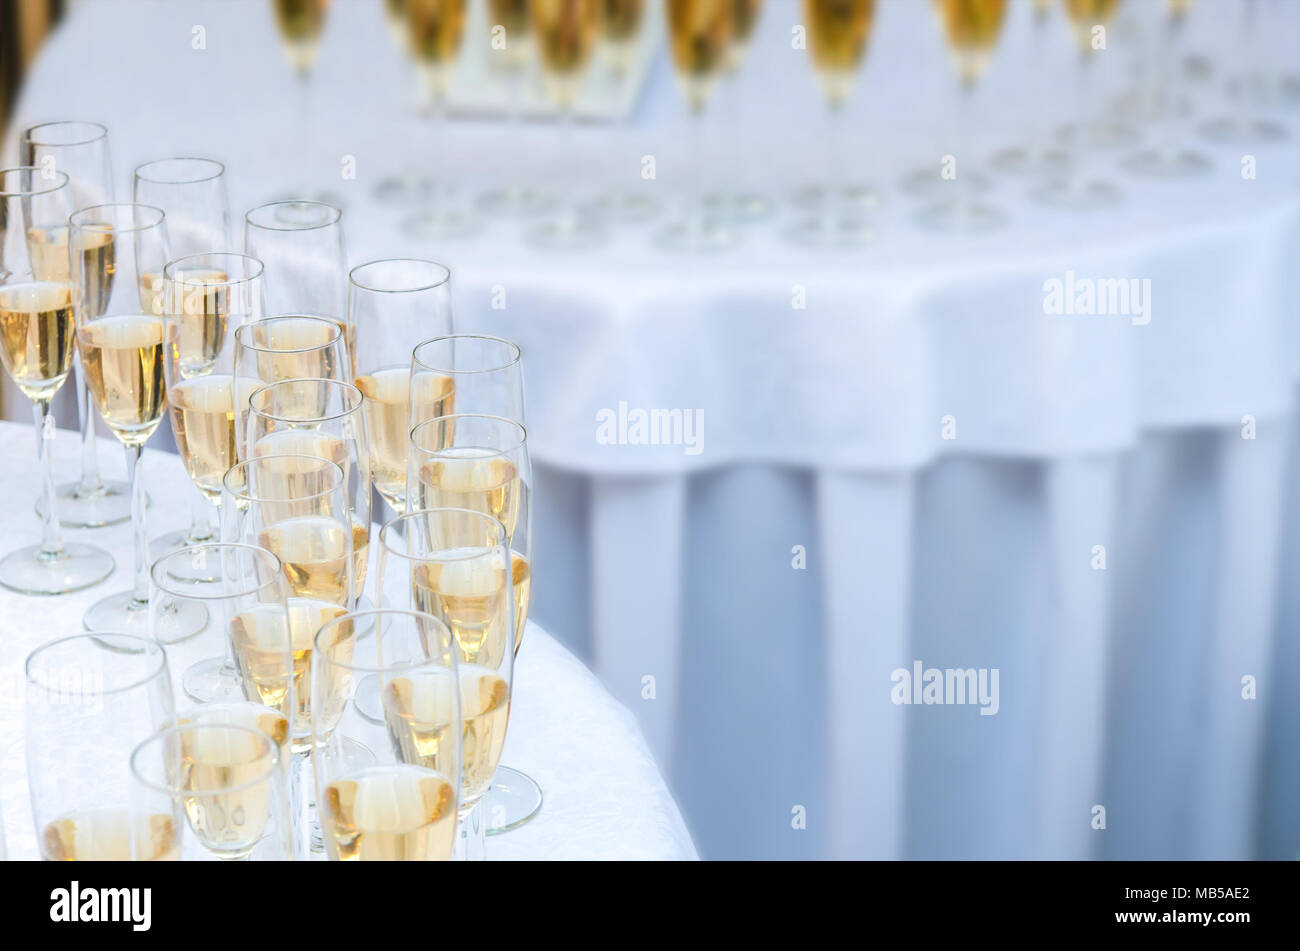 A lot of wine glasses with a champagne or white wine on the round table. Alcohol background - Stock Image